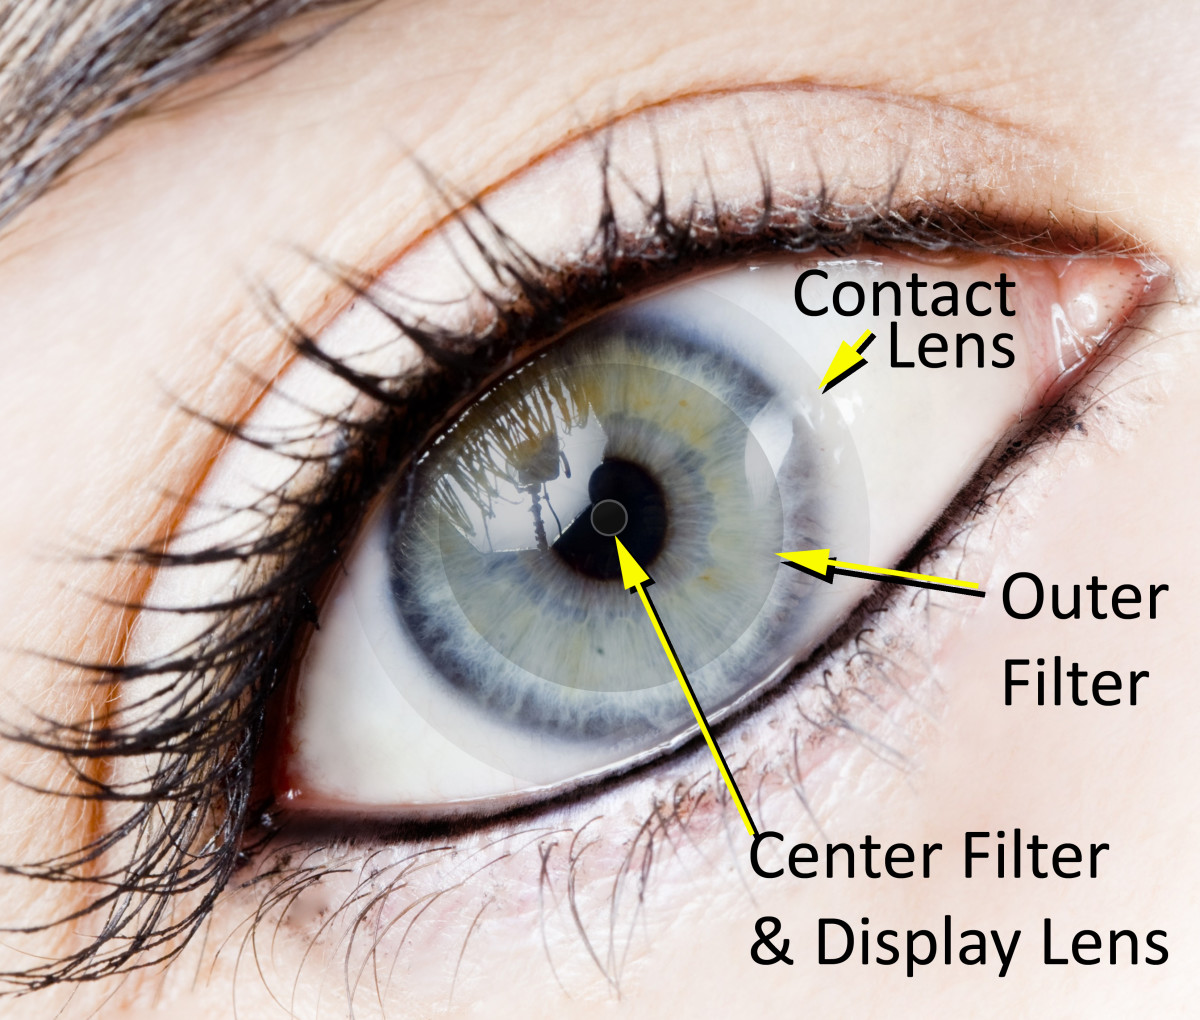 Do Contact Lenses Cause pressure increase in eyes?